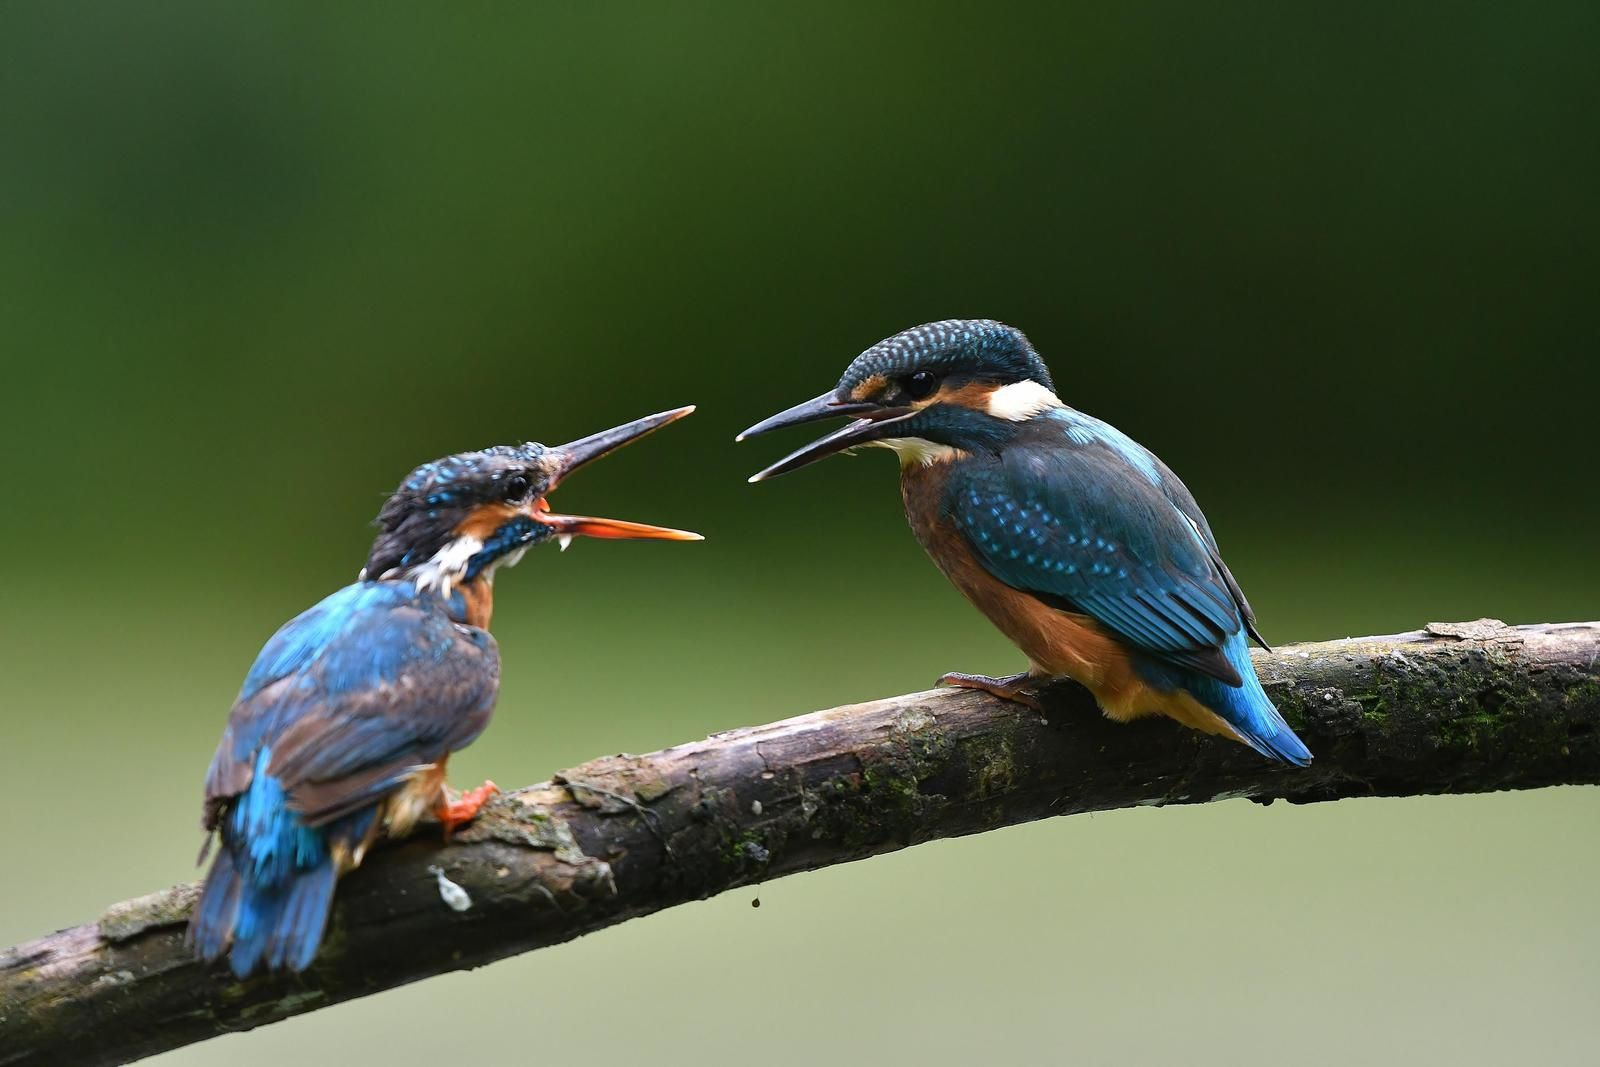 Martins pêcheurs d'Europe (Alcedo atthis).